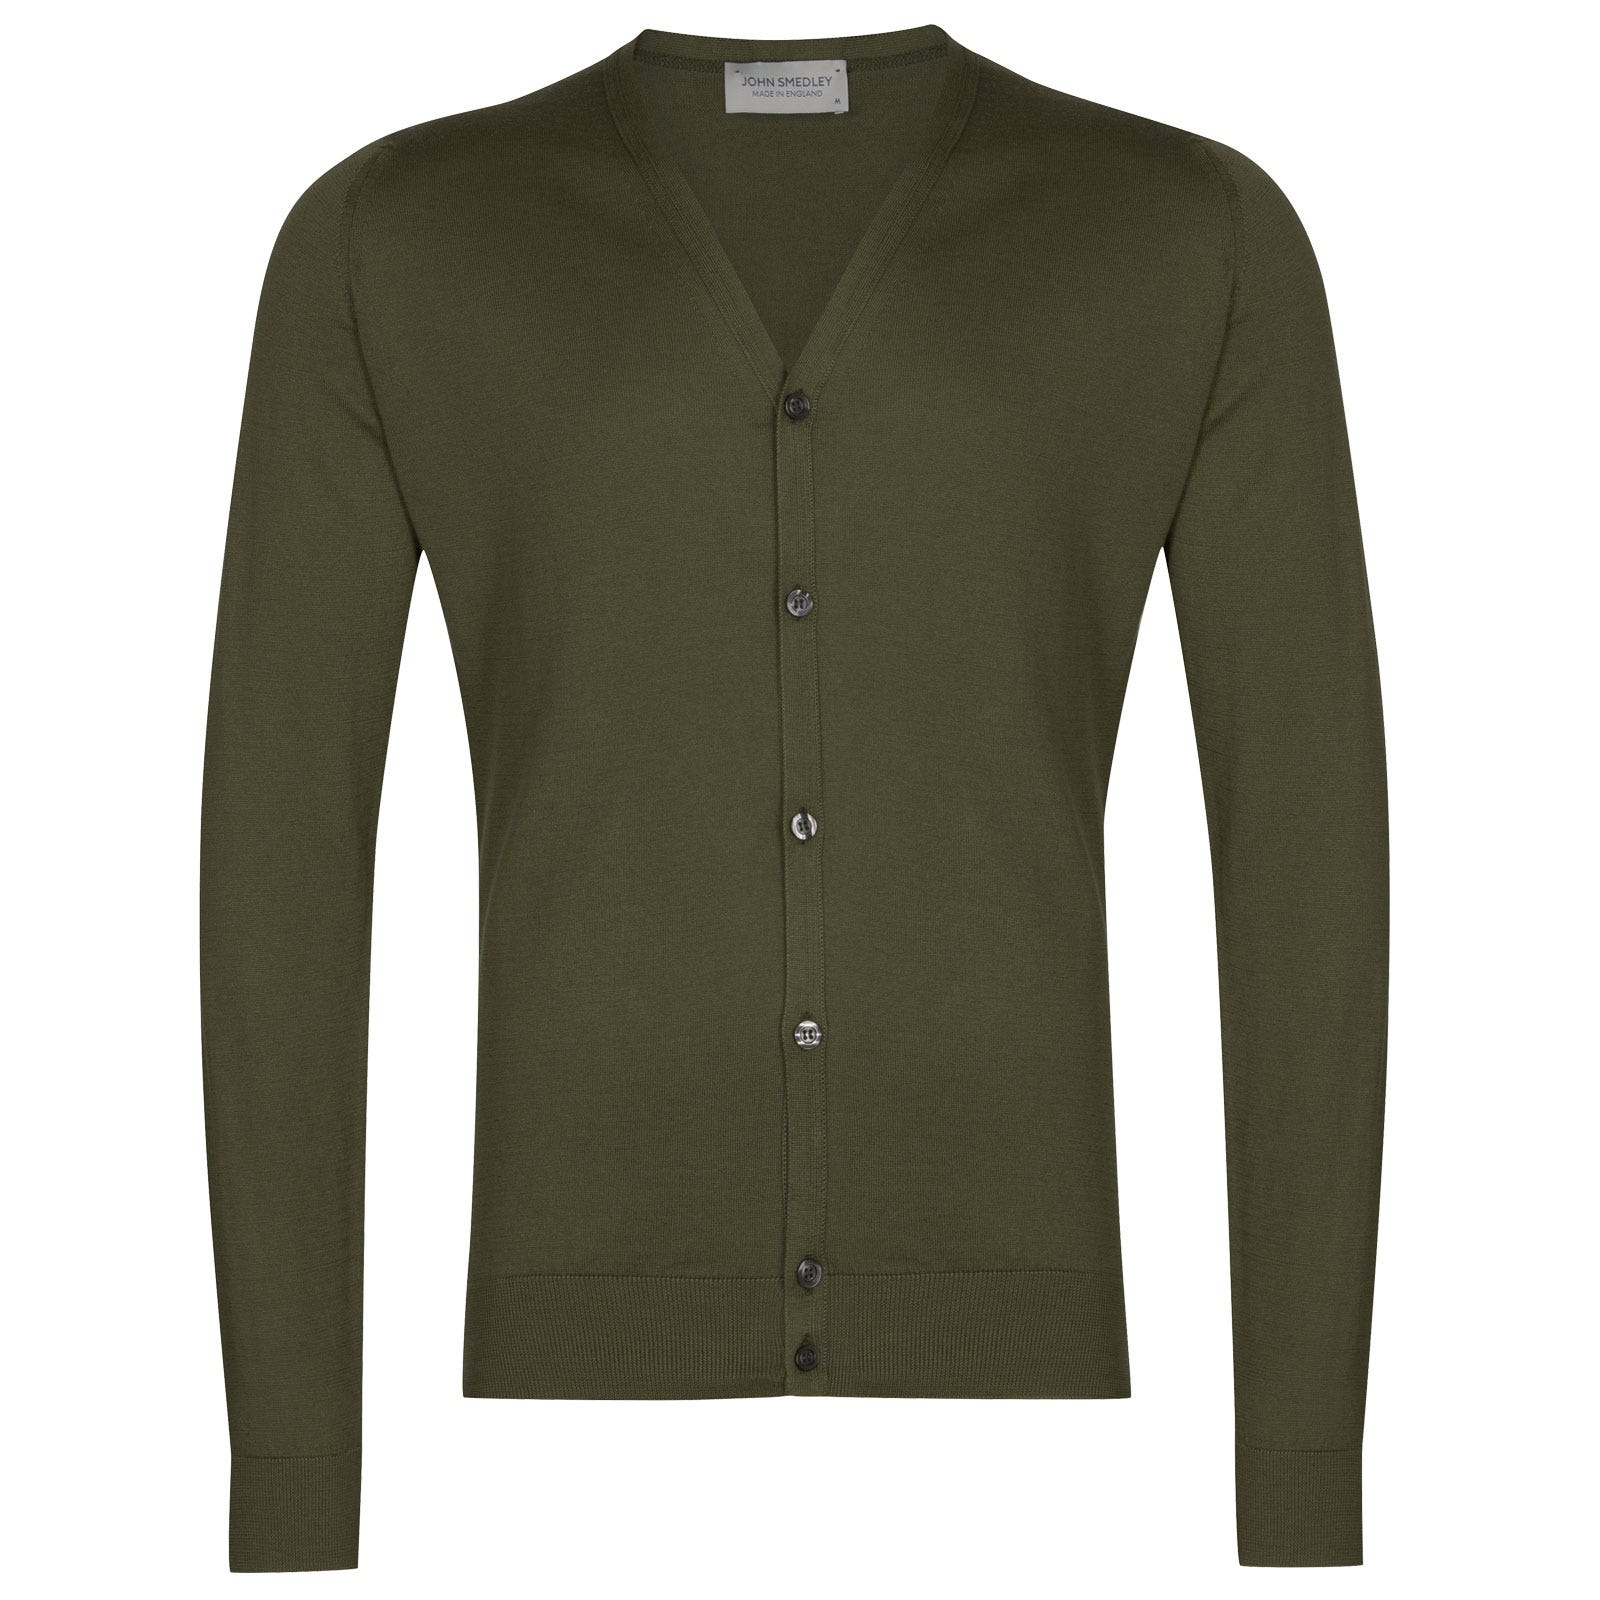 John Smedley Whitchurch in Sepal green Cardigan-XXL